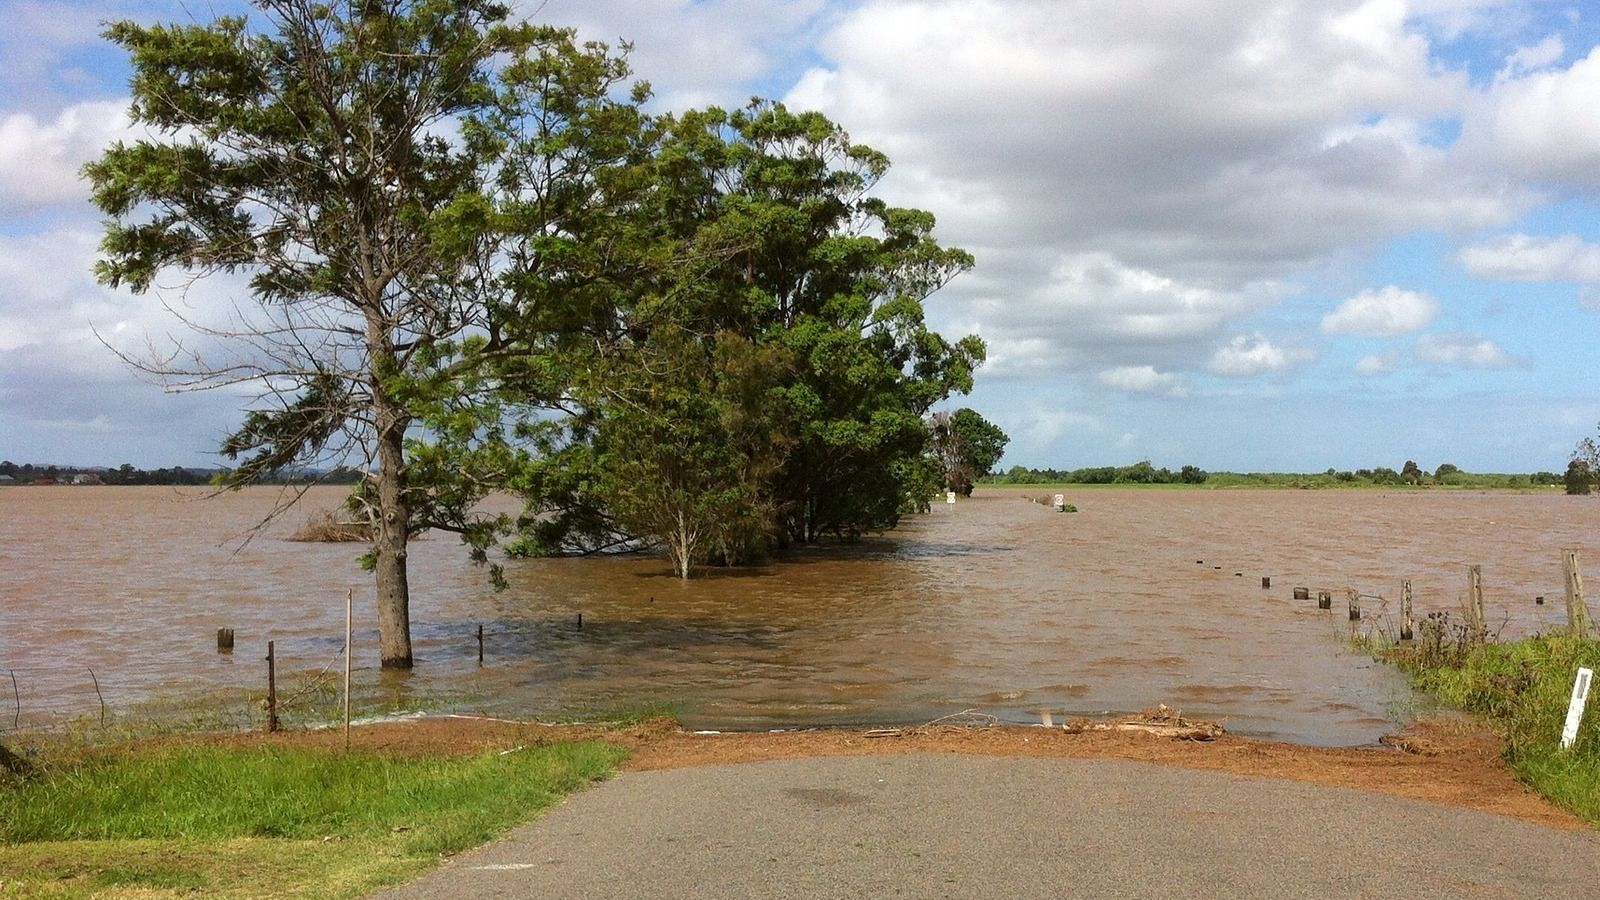 Flooded rural road with a line of trees along the road banner image